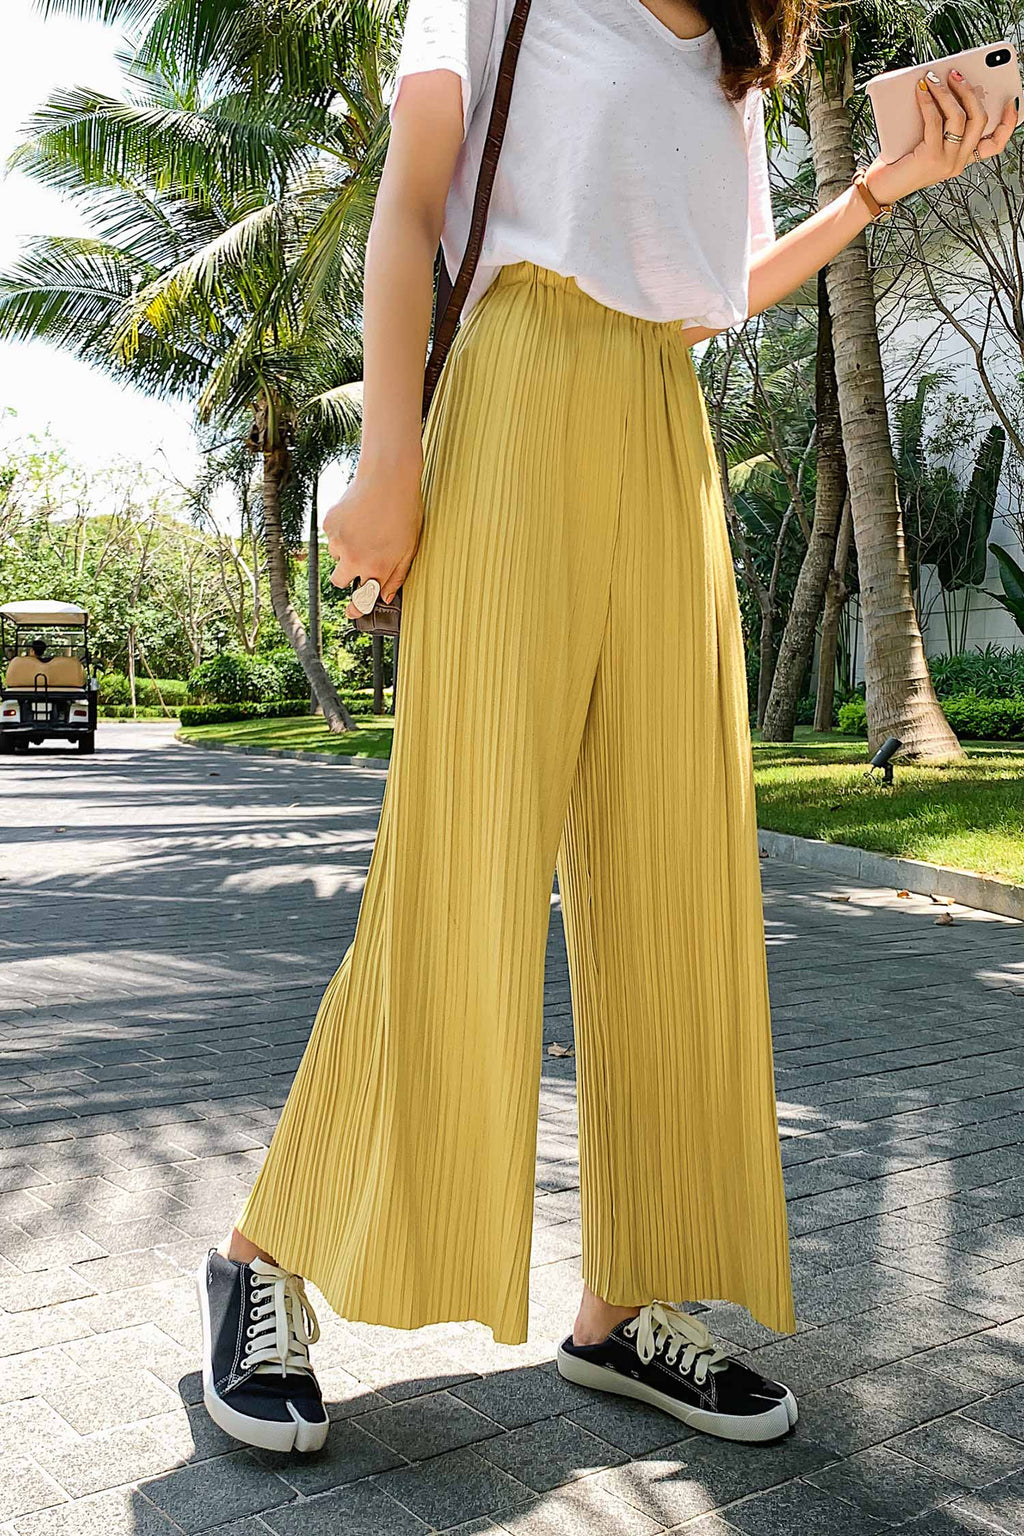 Summer Straight Skinny Pleated Loose Casual Pant - 7GEGE